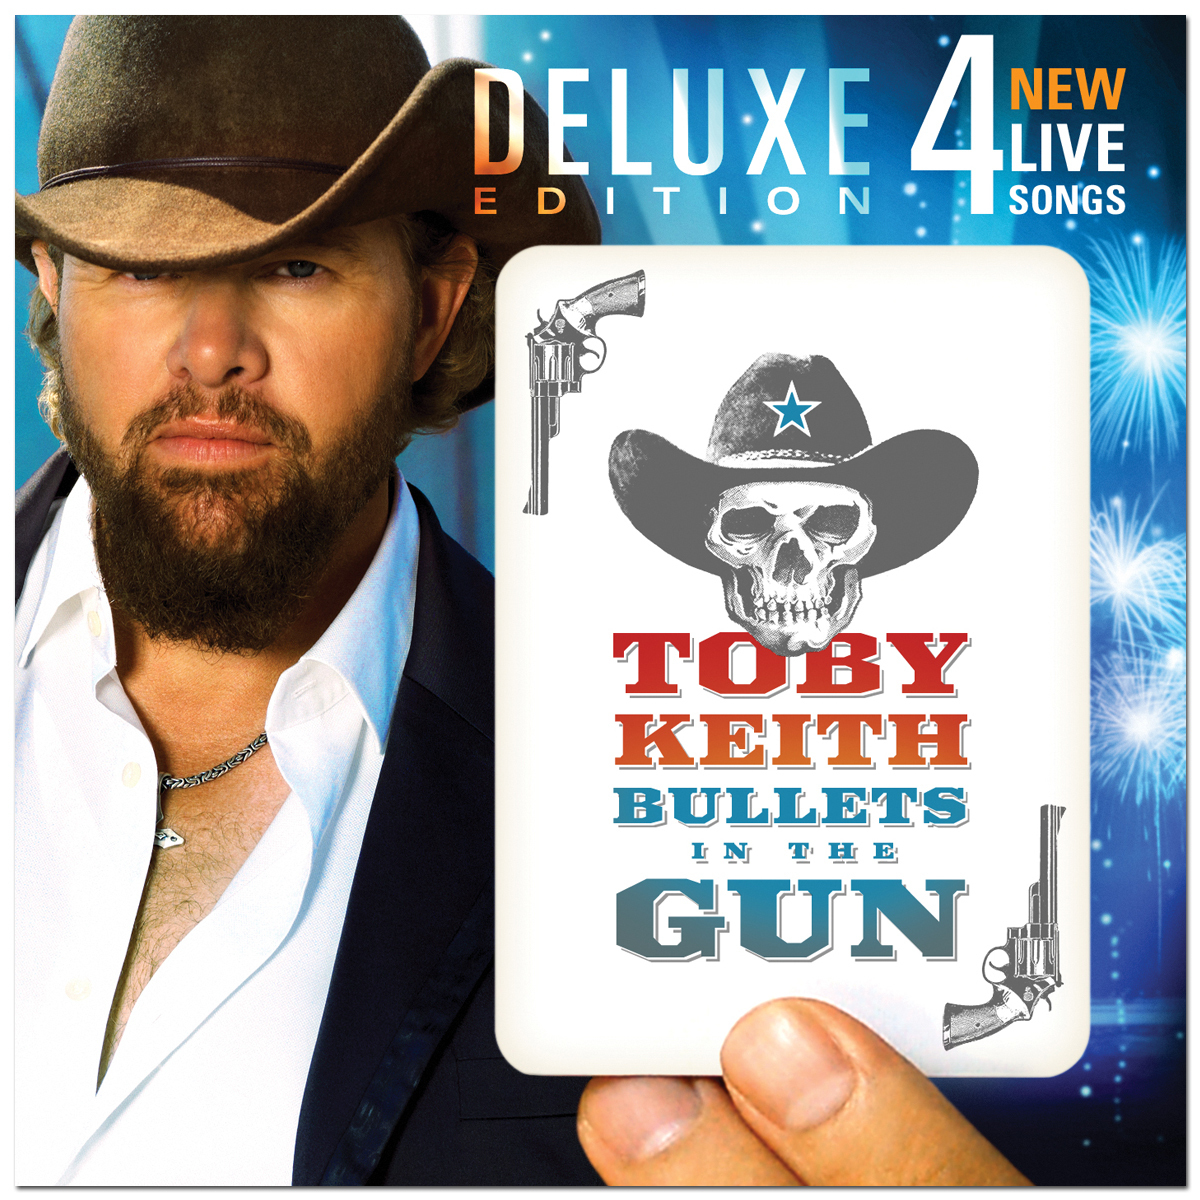 Toby Keith - Bullets In The Gun - Deluxe Package - MP3 Download